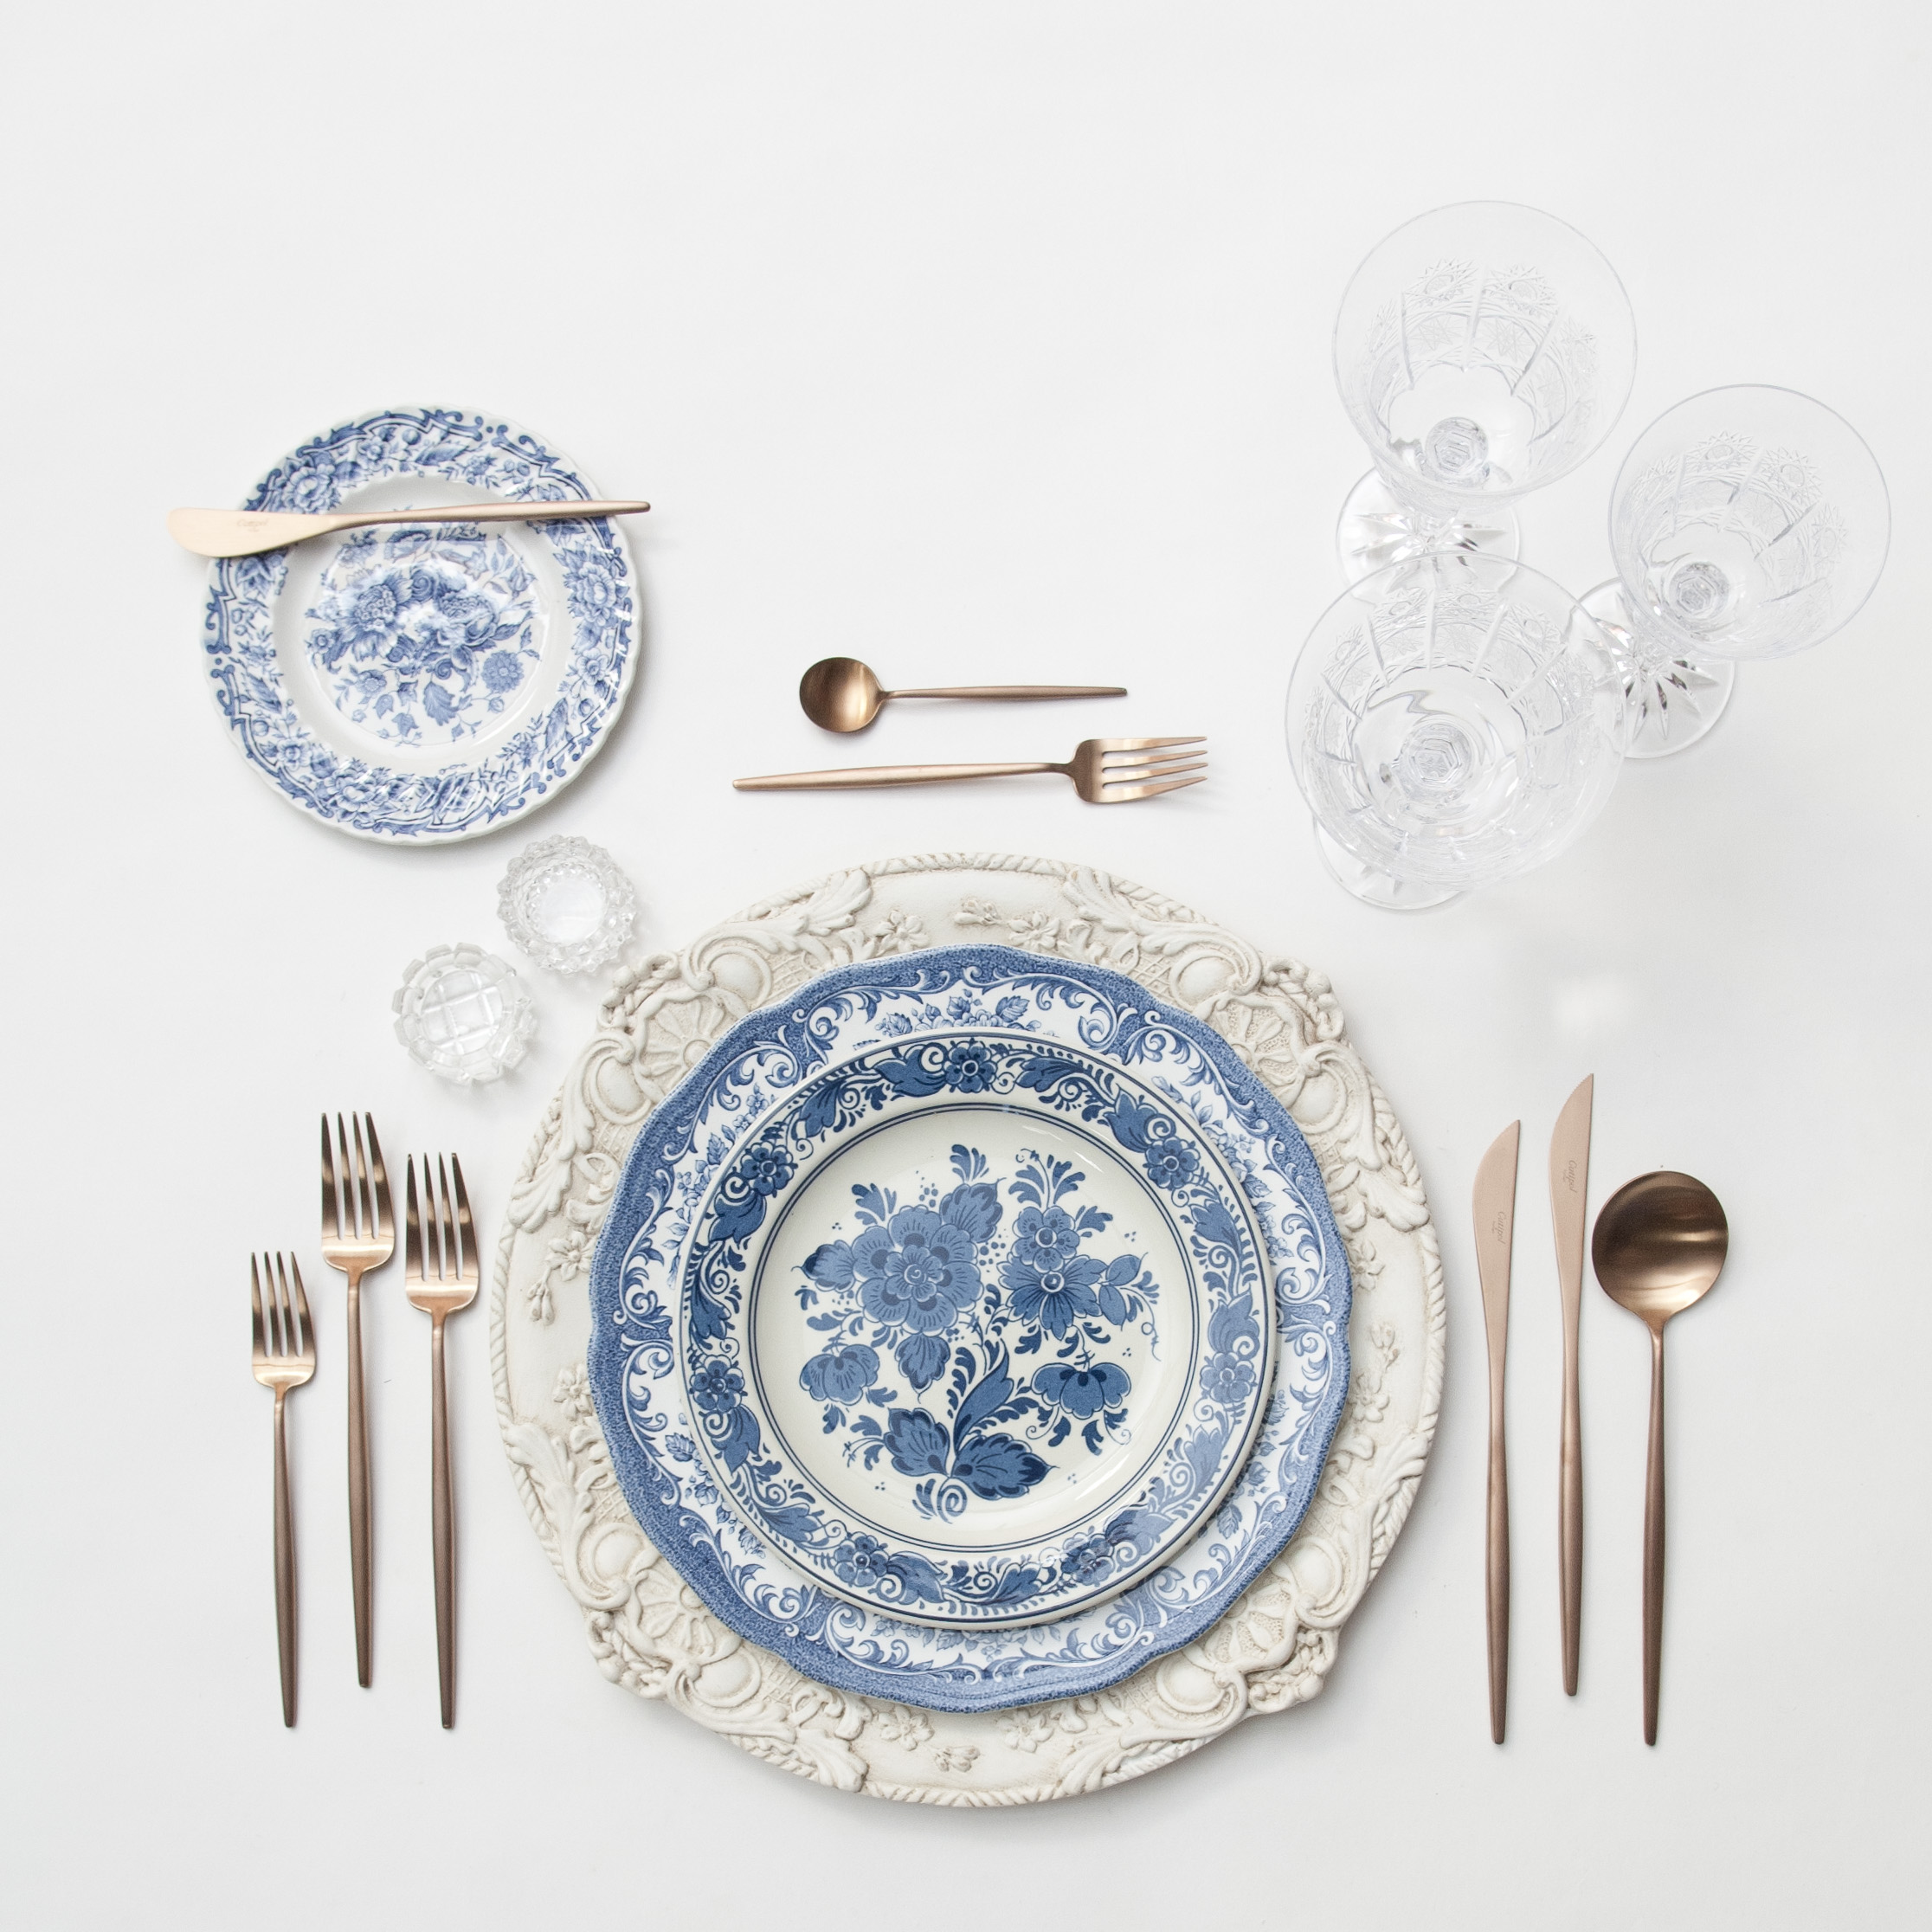 RENT: Verona Chargers in Antique White + Blue Garden Collection Vintage China + Moon Flatware in Brushed Rose Gold + Czech Crystal Stemware + Antique Crystal Salt Cellars  SHOP:Moon Flatware in Brushed Rose Gold